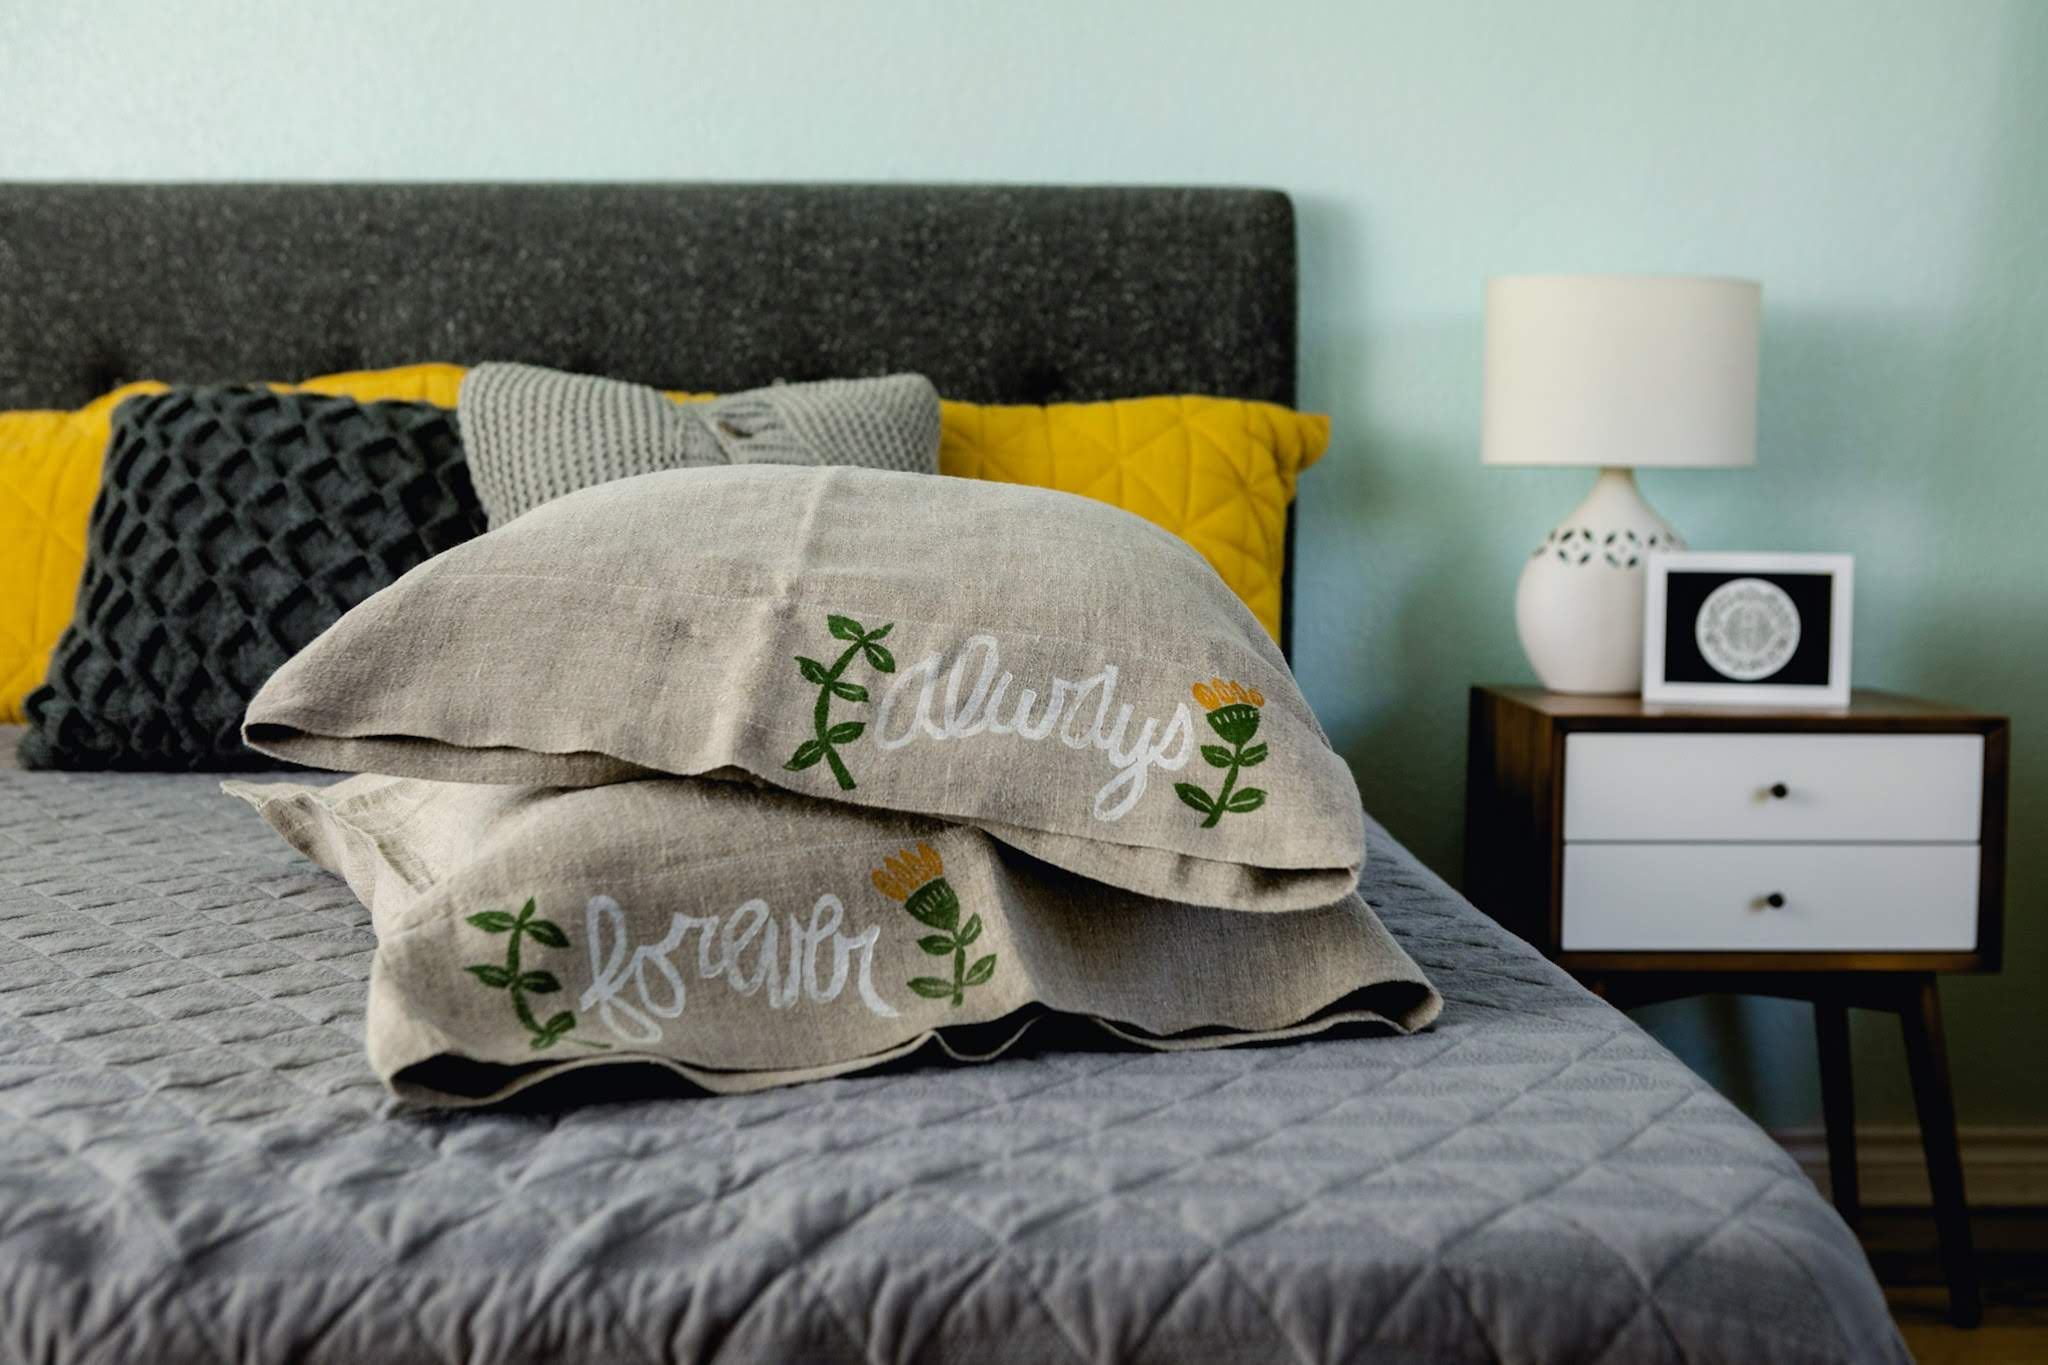 Home Again ALWAYS and FOREVER pillows reshoot 04.jpg